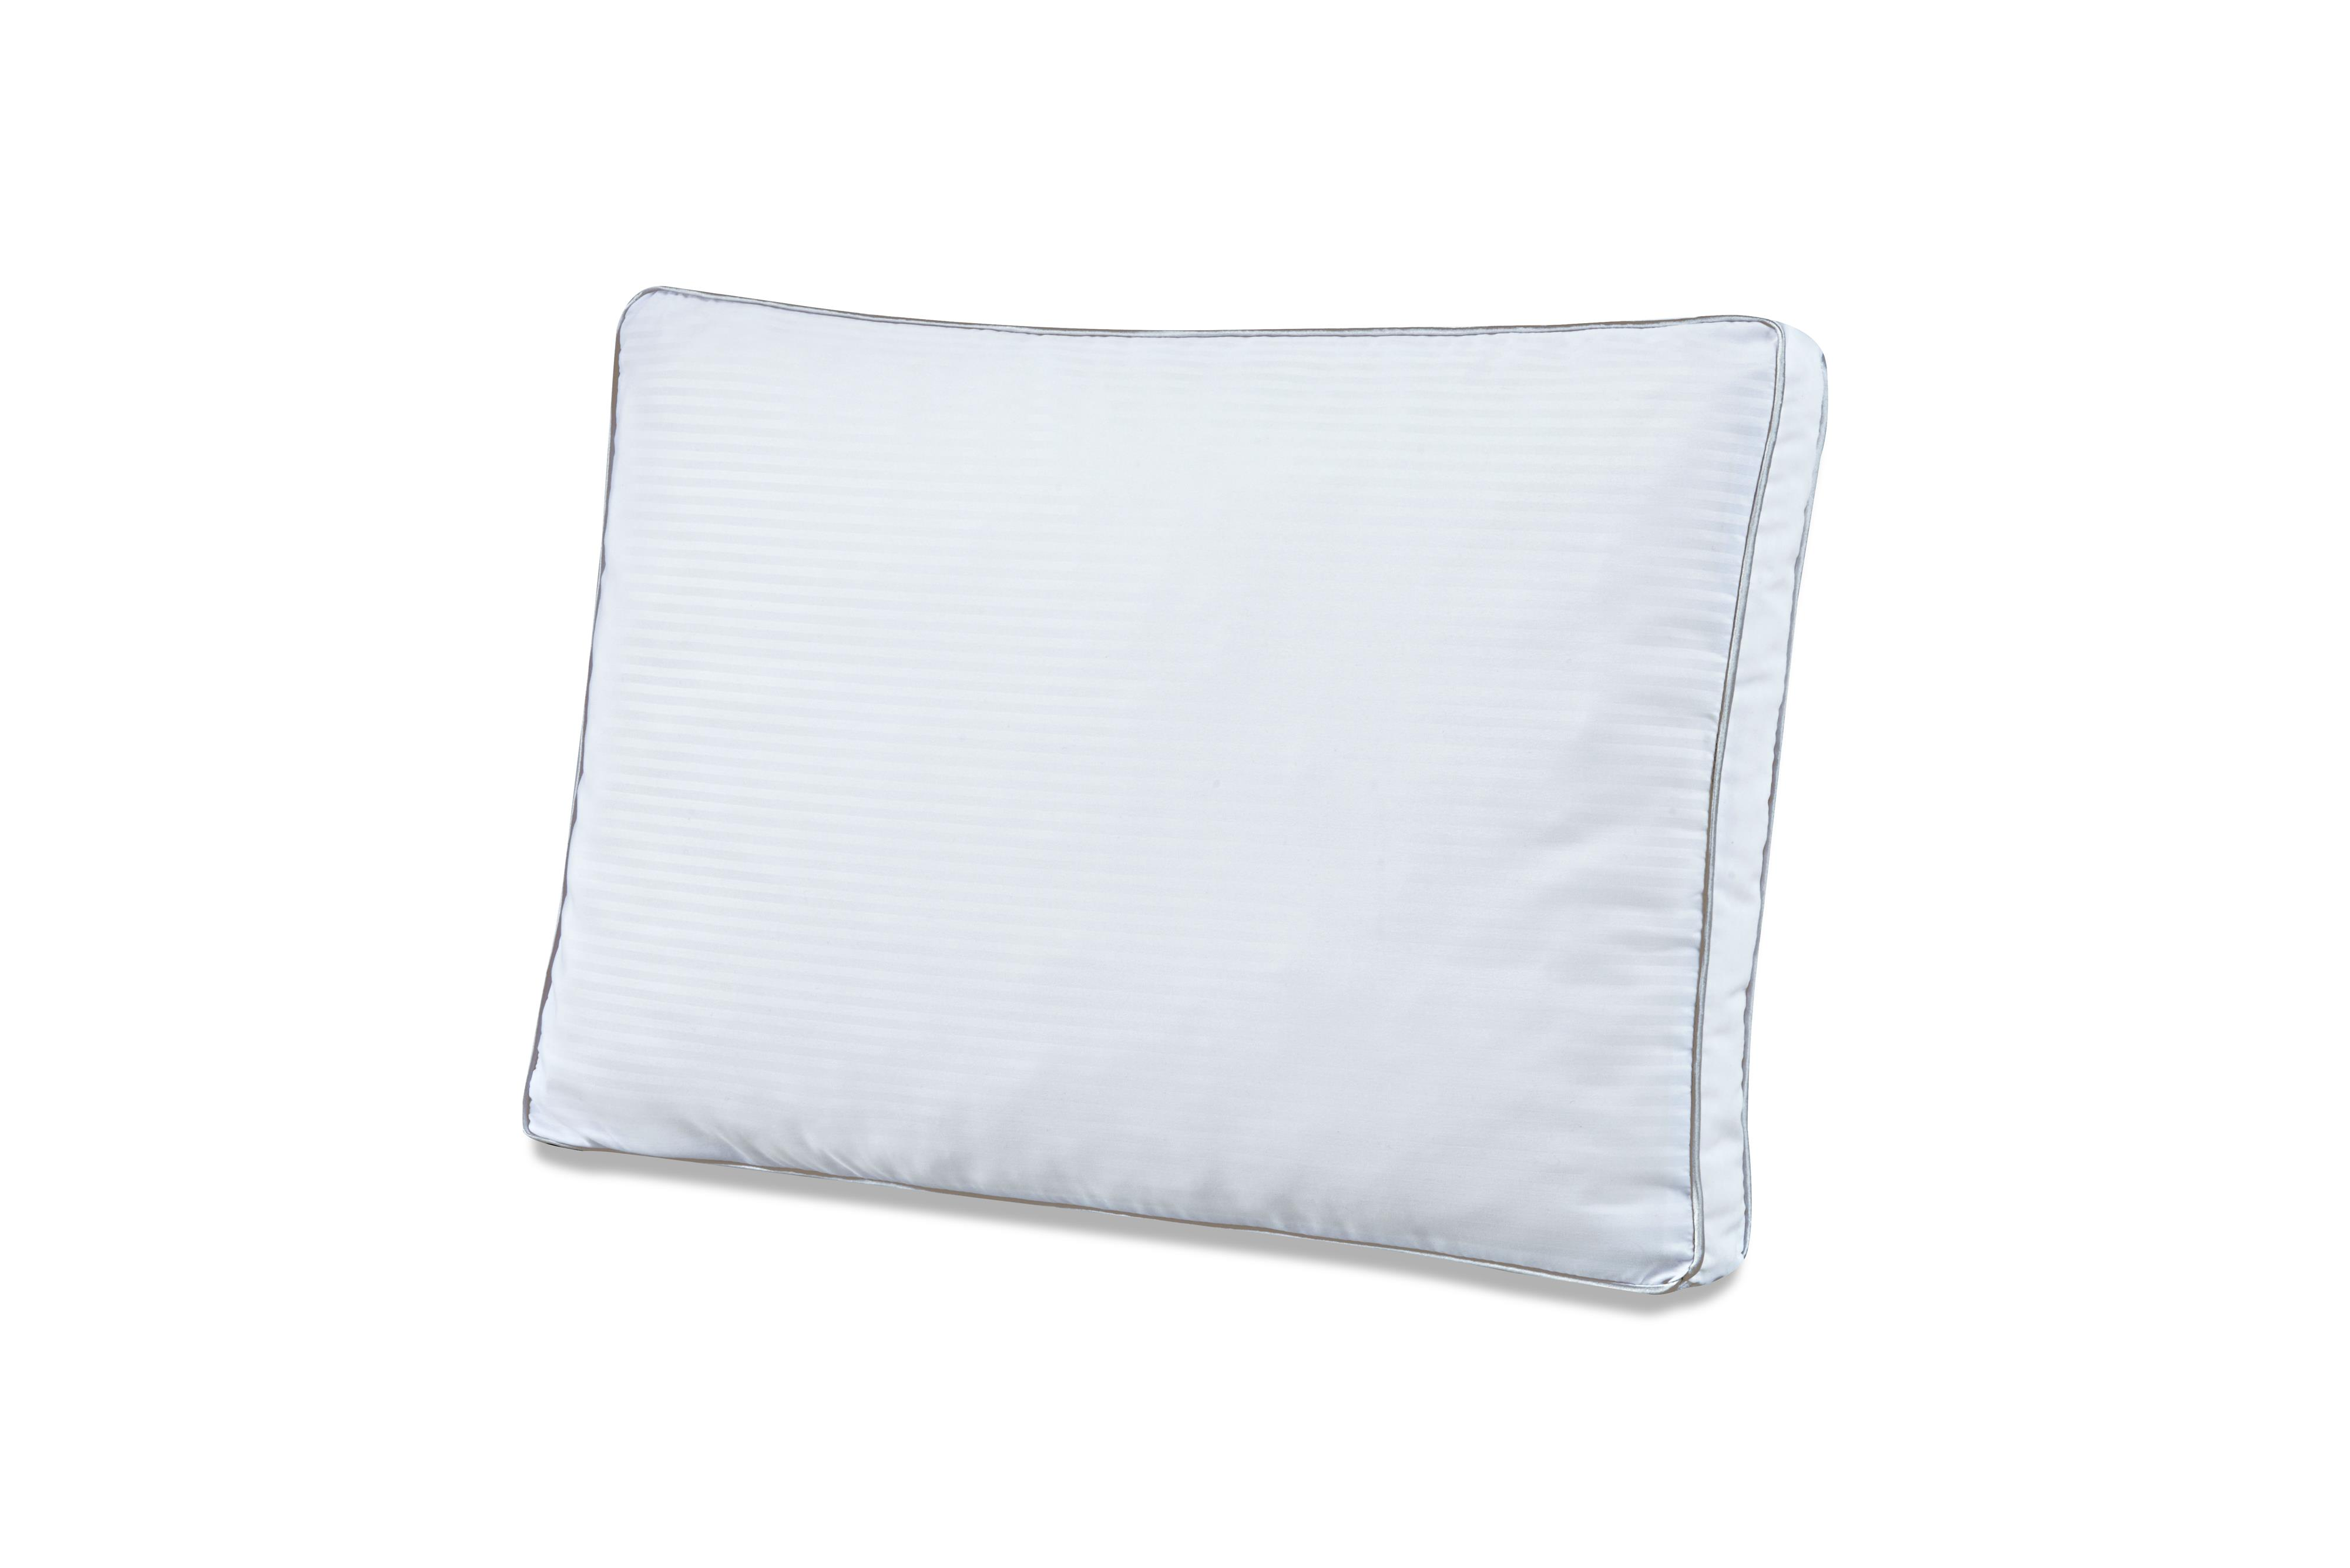 Pillows - Enso King 2 Pack of Puregel Memory Foam Pillows by Enso Sleep Systems at Dream Home Interiors